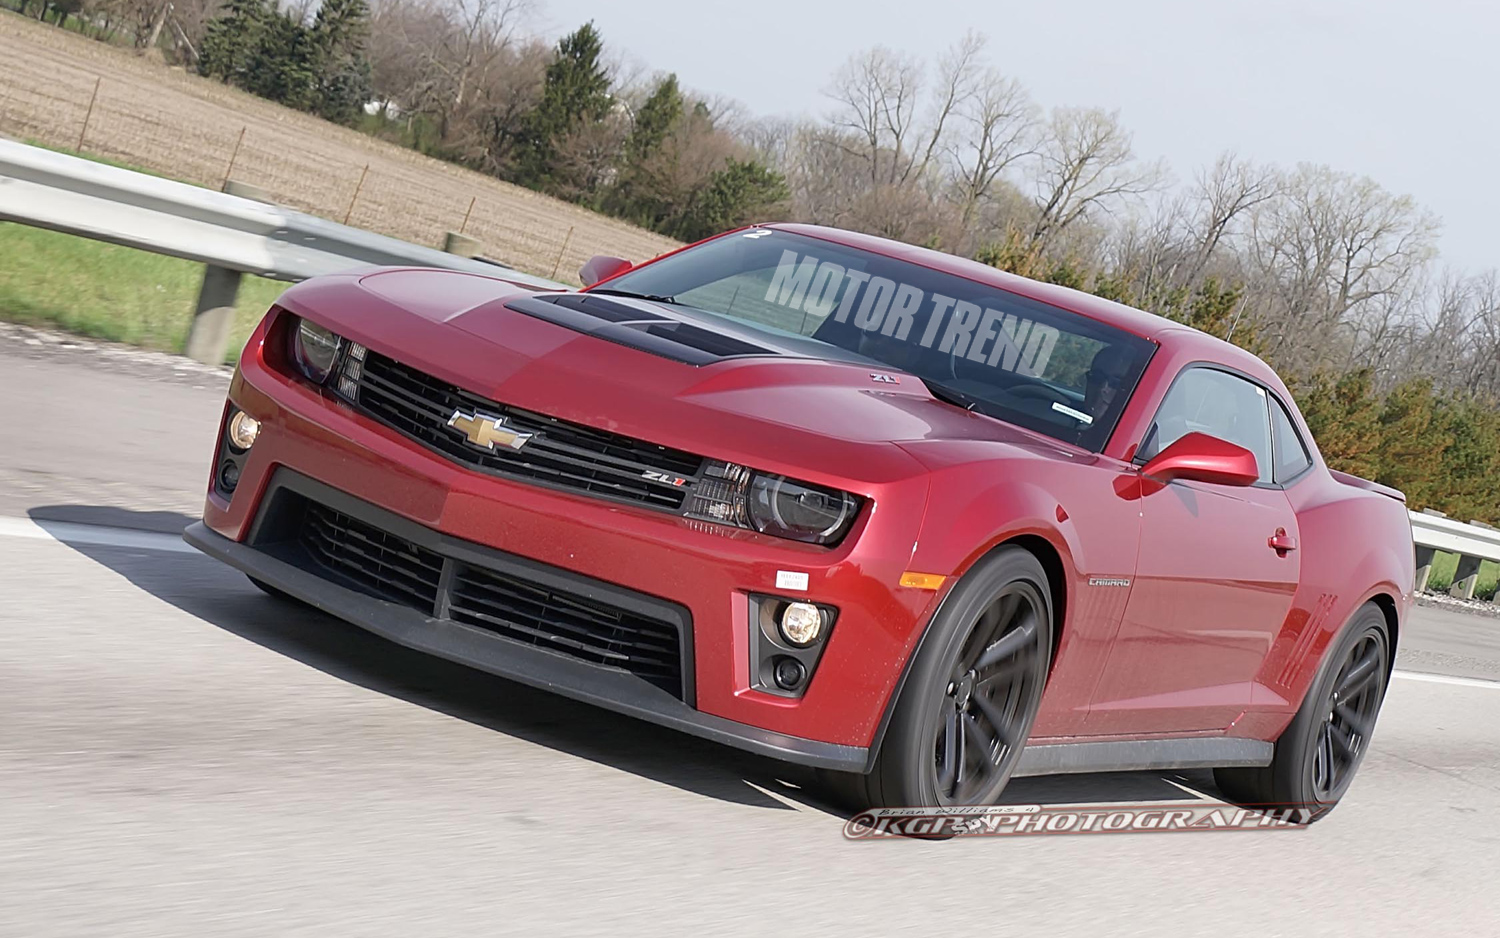 2013 chevrolet camaro zl1 remains the most powerful road going camaro